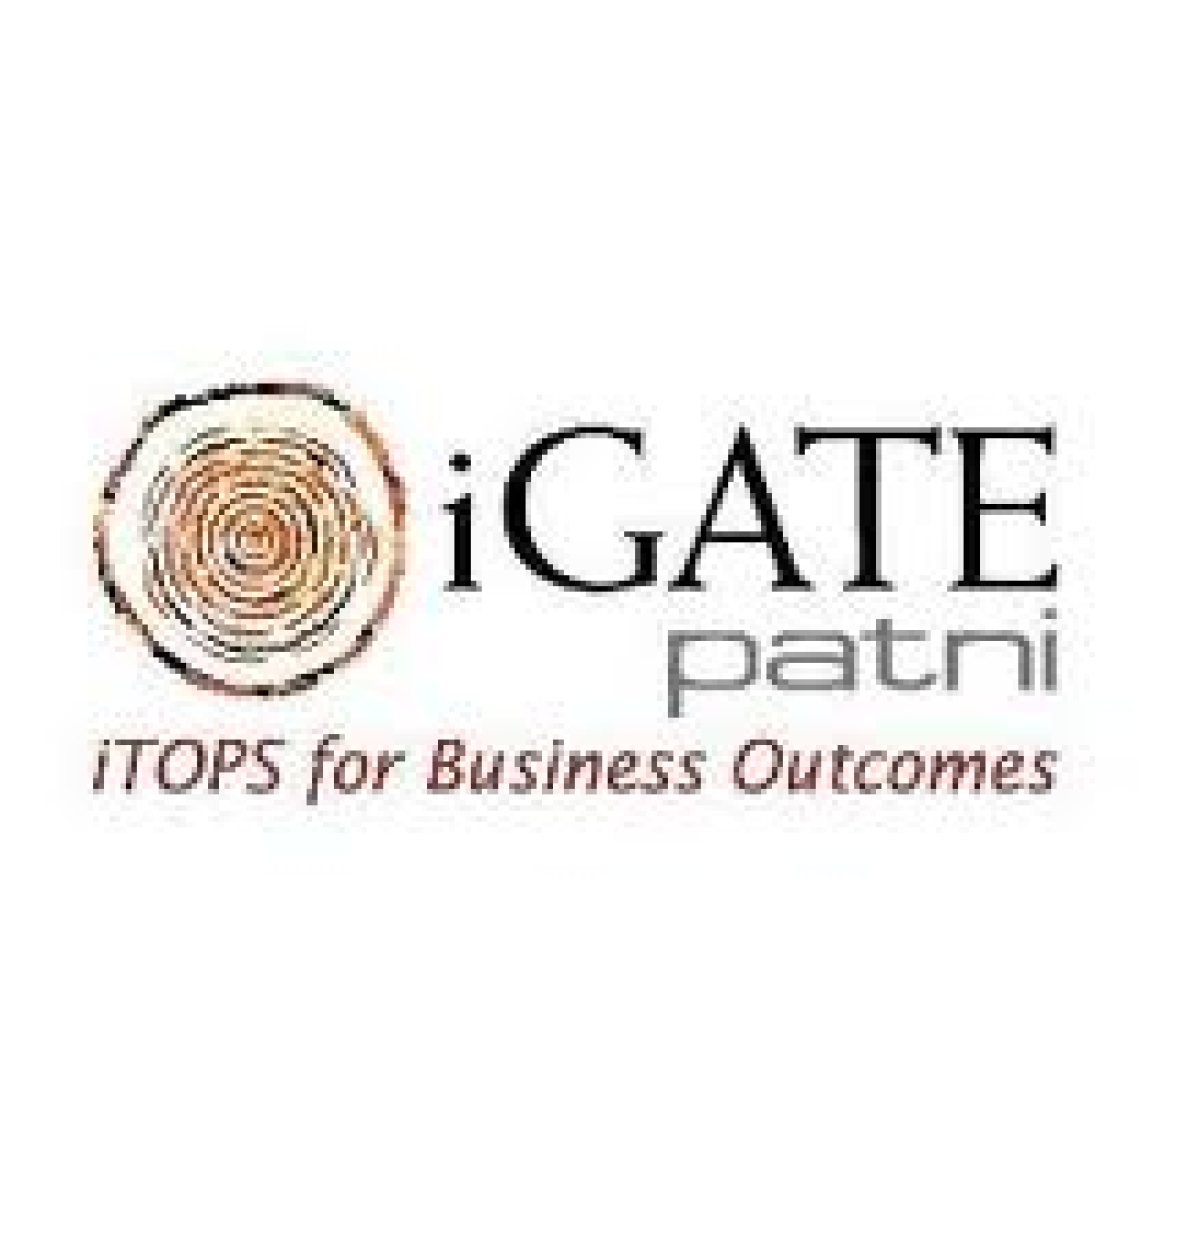 AZB Wadia Ghandy and Hogan Lovells lead on iGates Patni delisting from stock exchanges